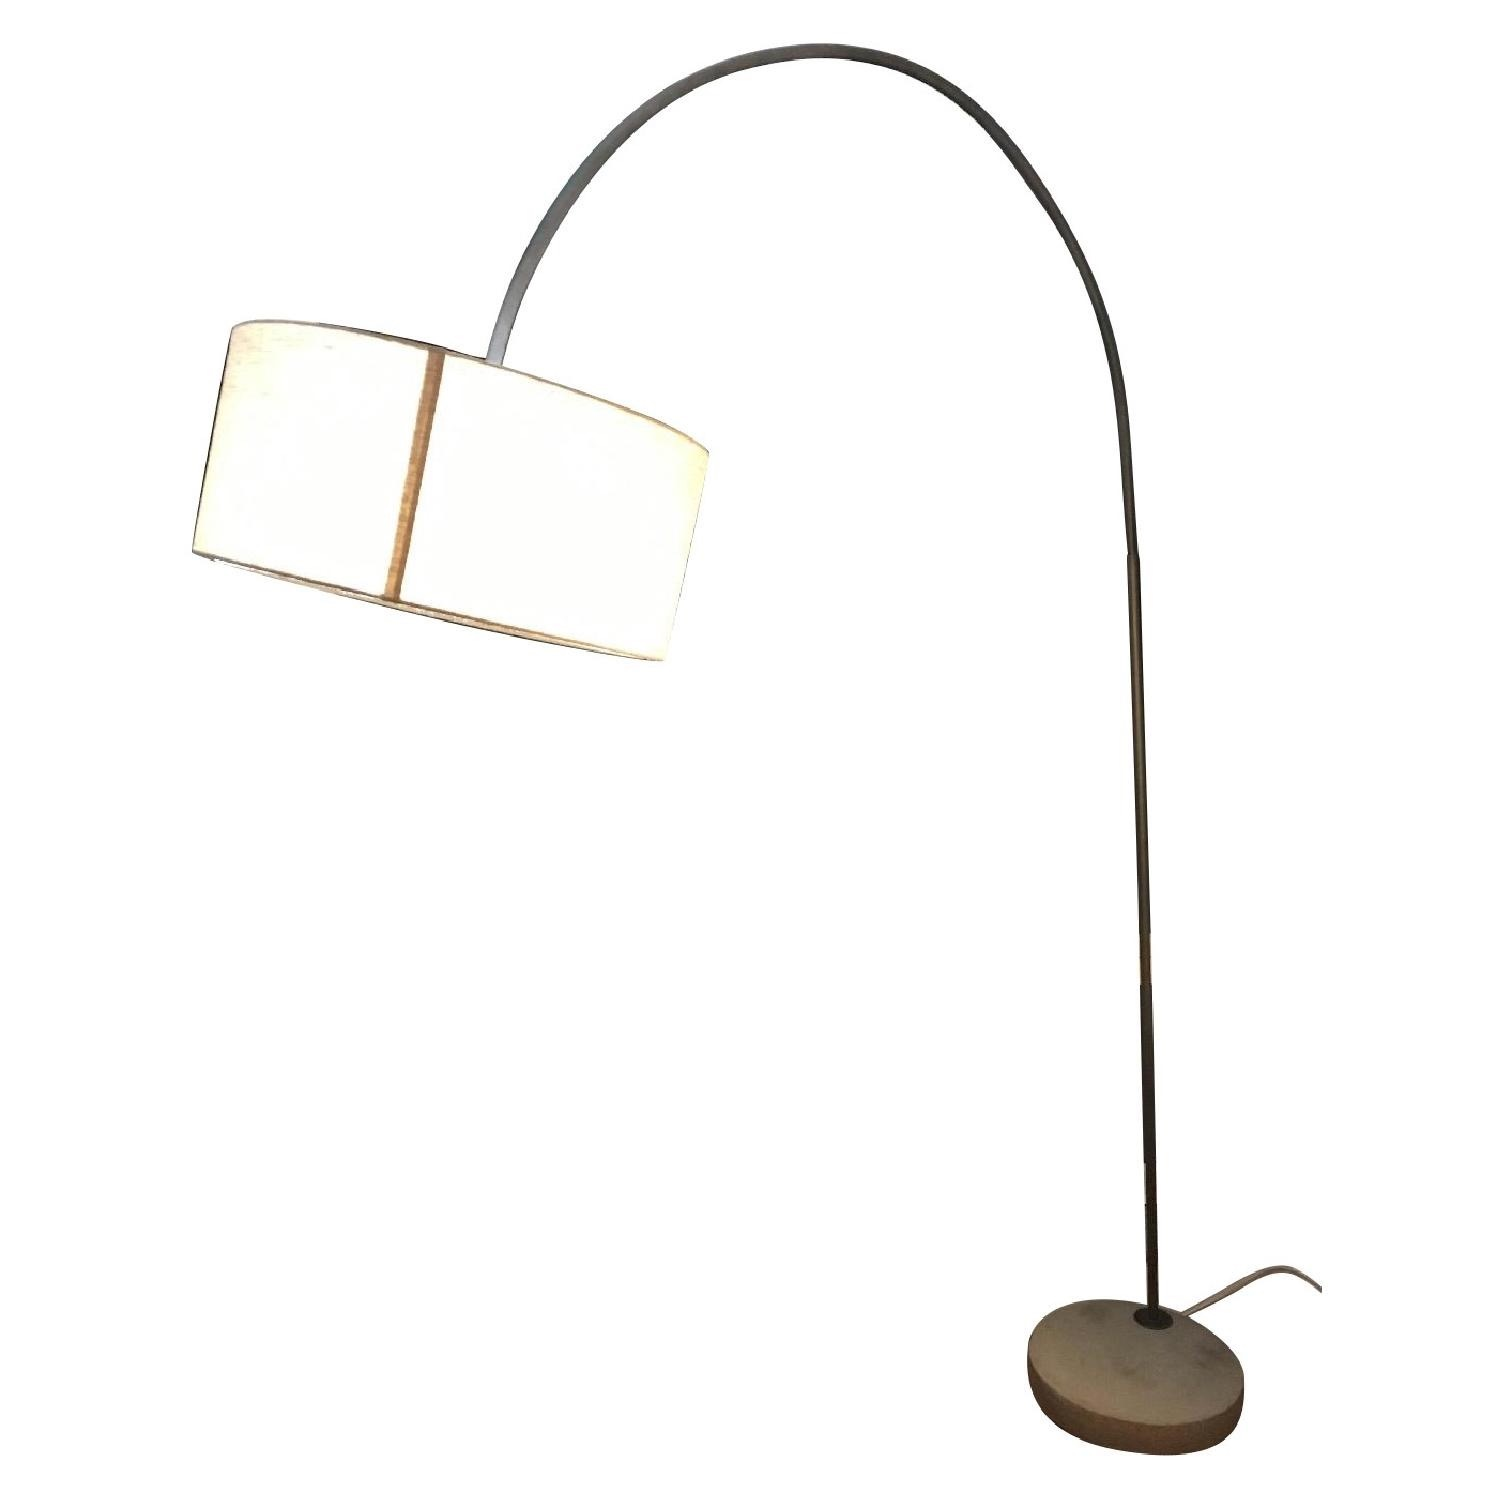 CB2 Arched Floor Lamp Beige Shade Concrete Base - image-1